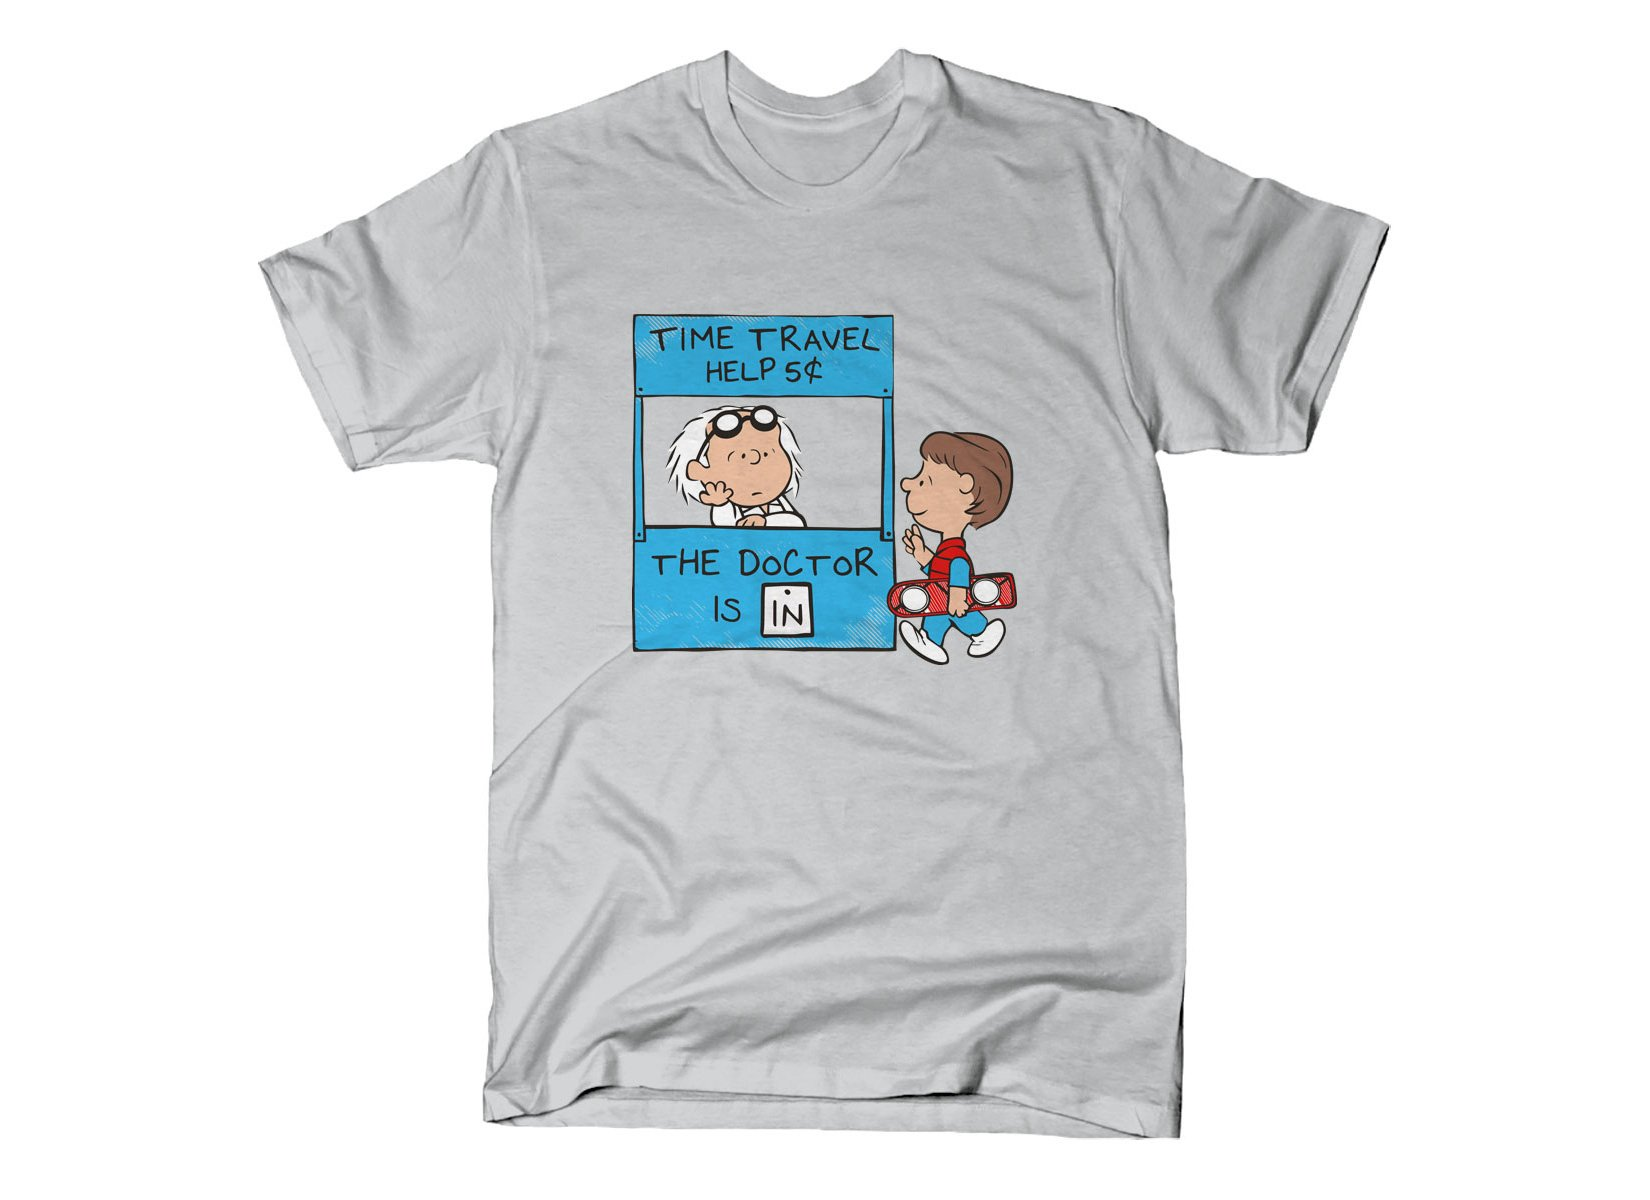 The Doctor Is In on Mens T-Shirt